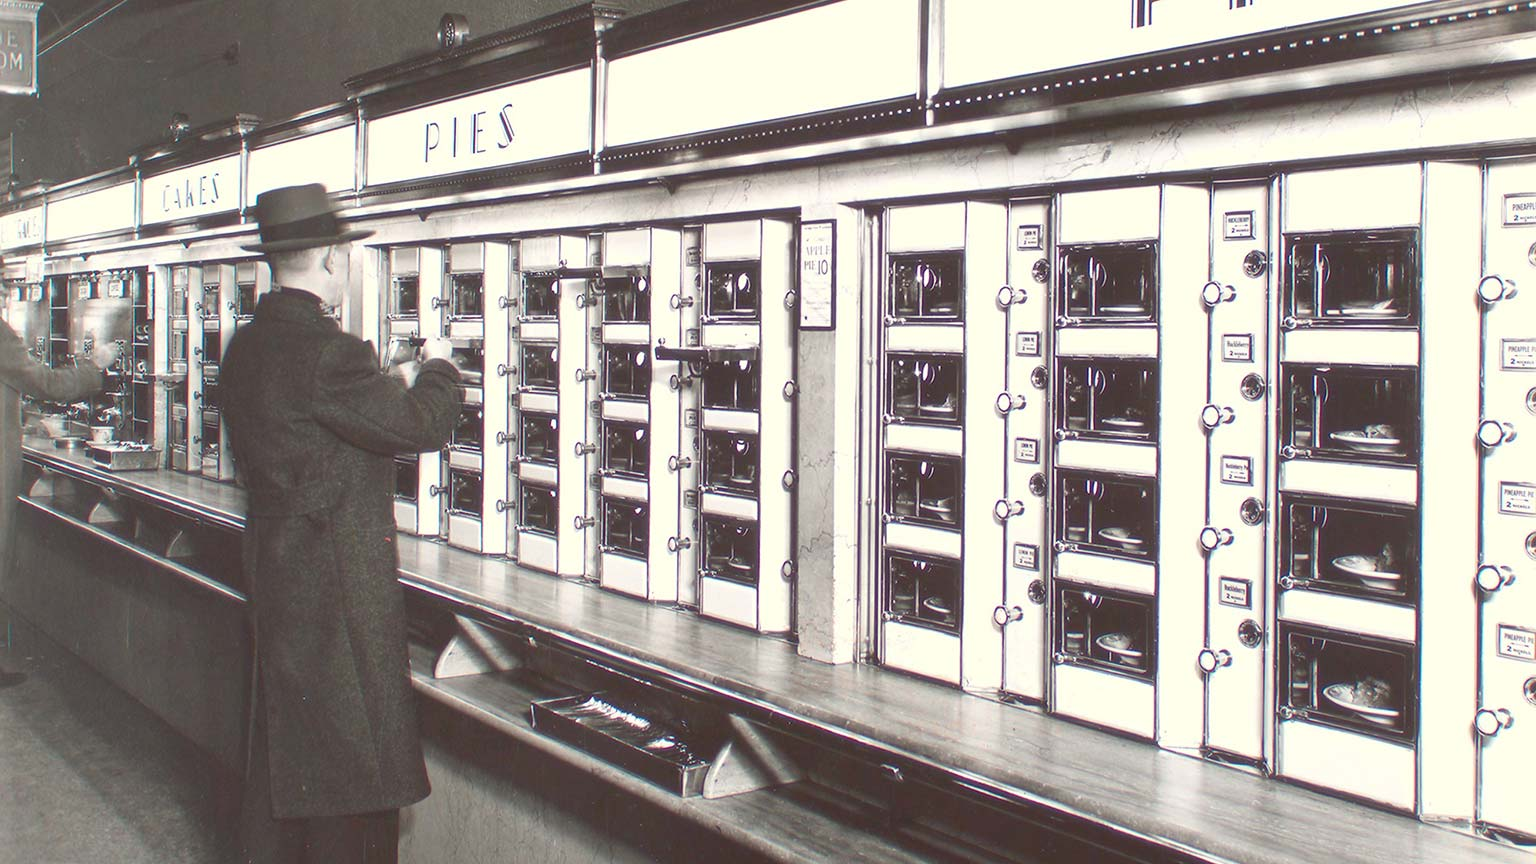 A man standing at an automat